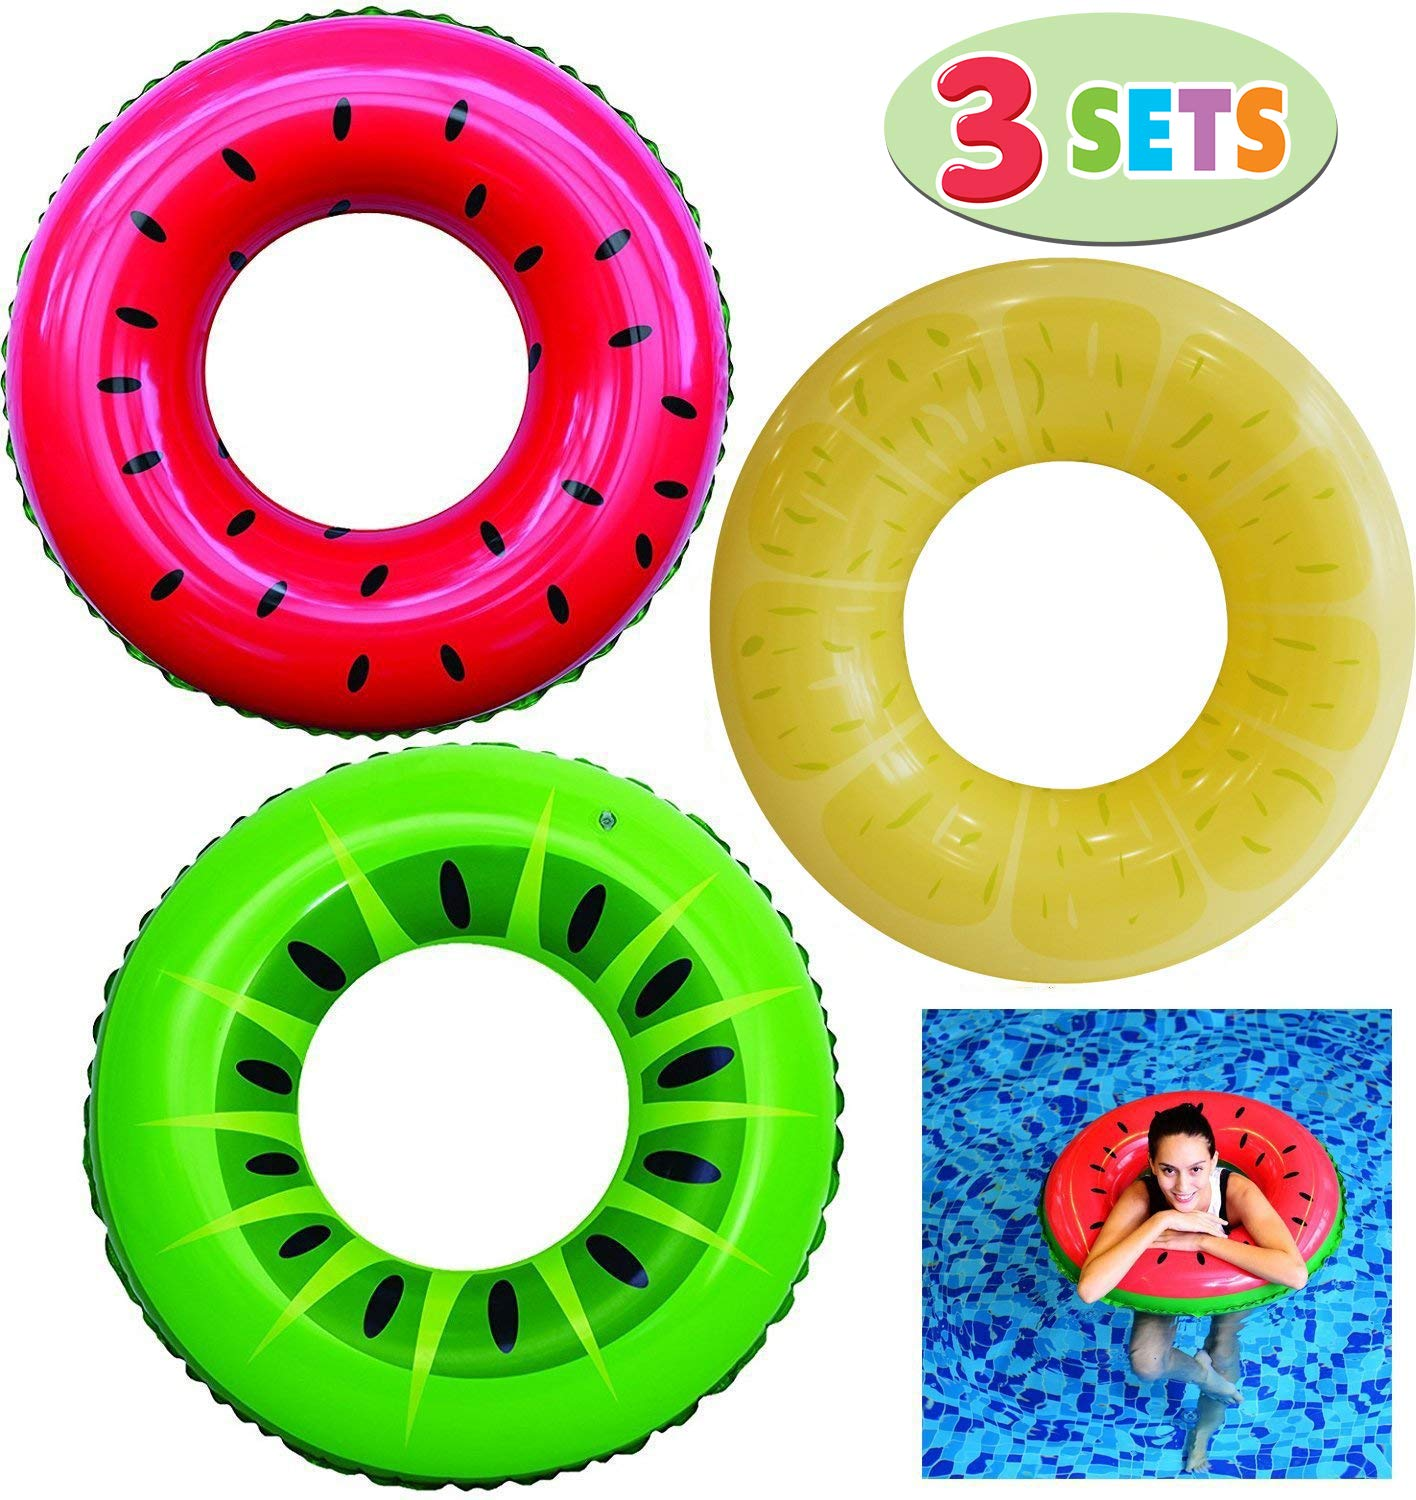 JOYIN Inflatable Swim Tube Raft (3 Pack) with Summer Fruits Painting, Pool Toys for Swimming Pool Party Decorations by JOYIN